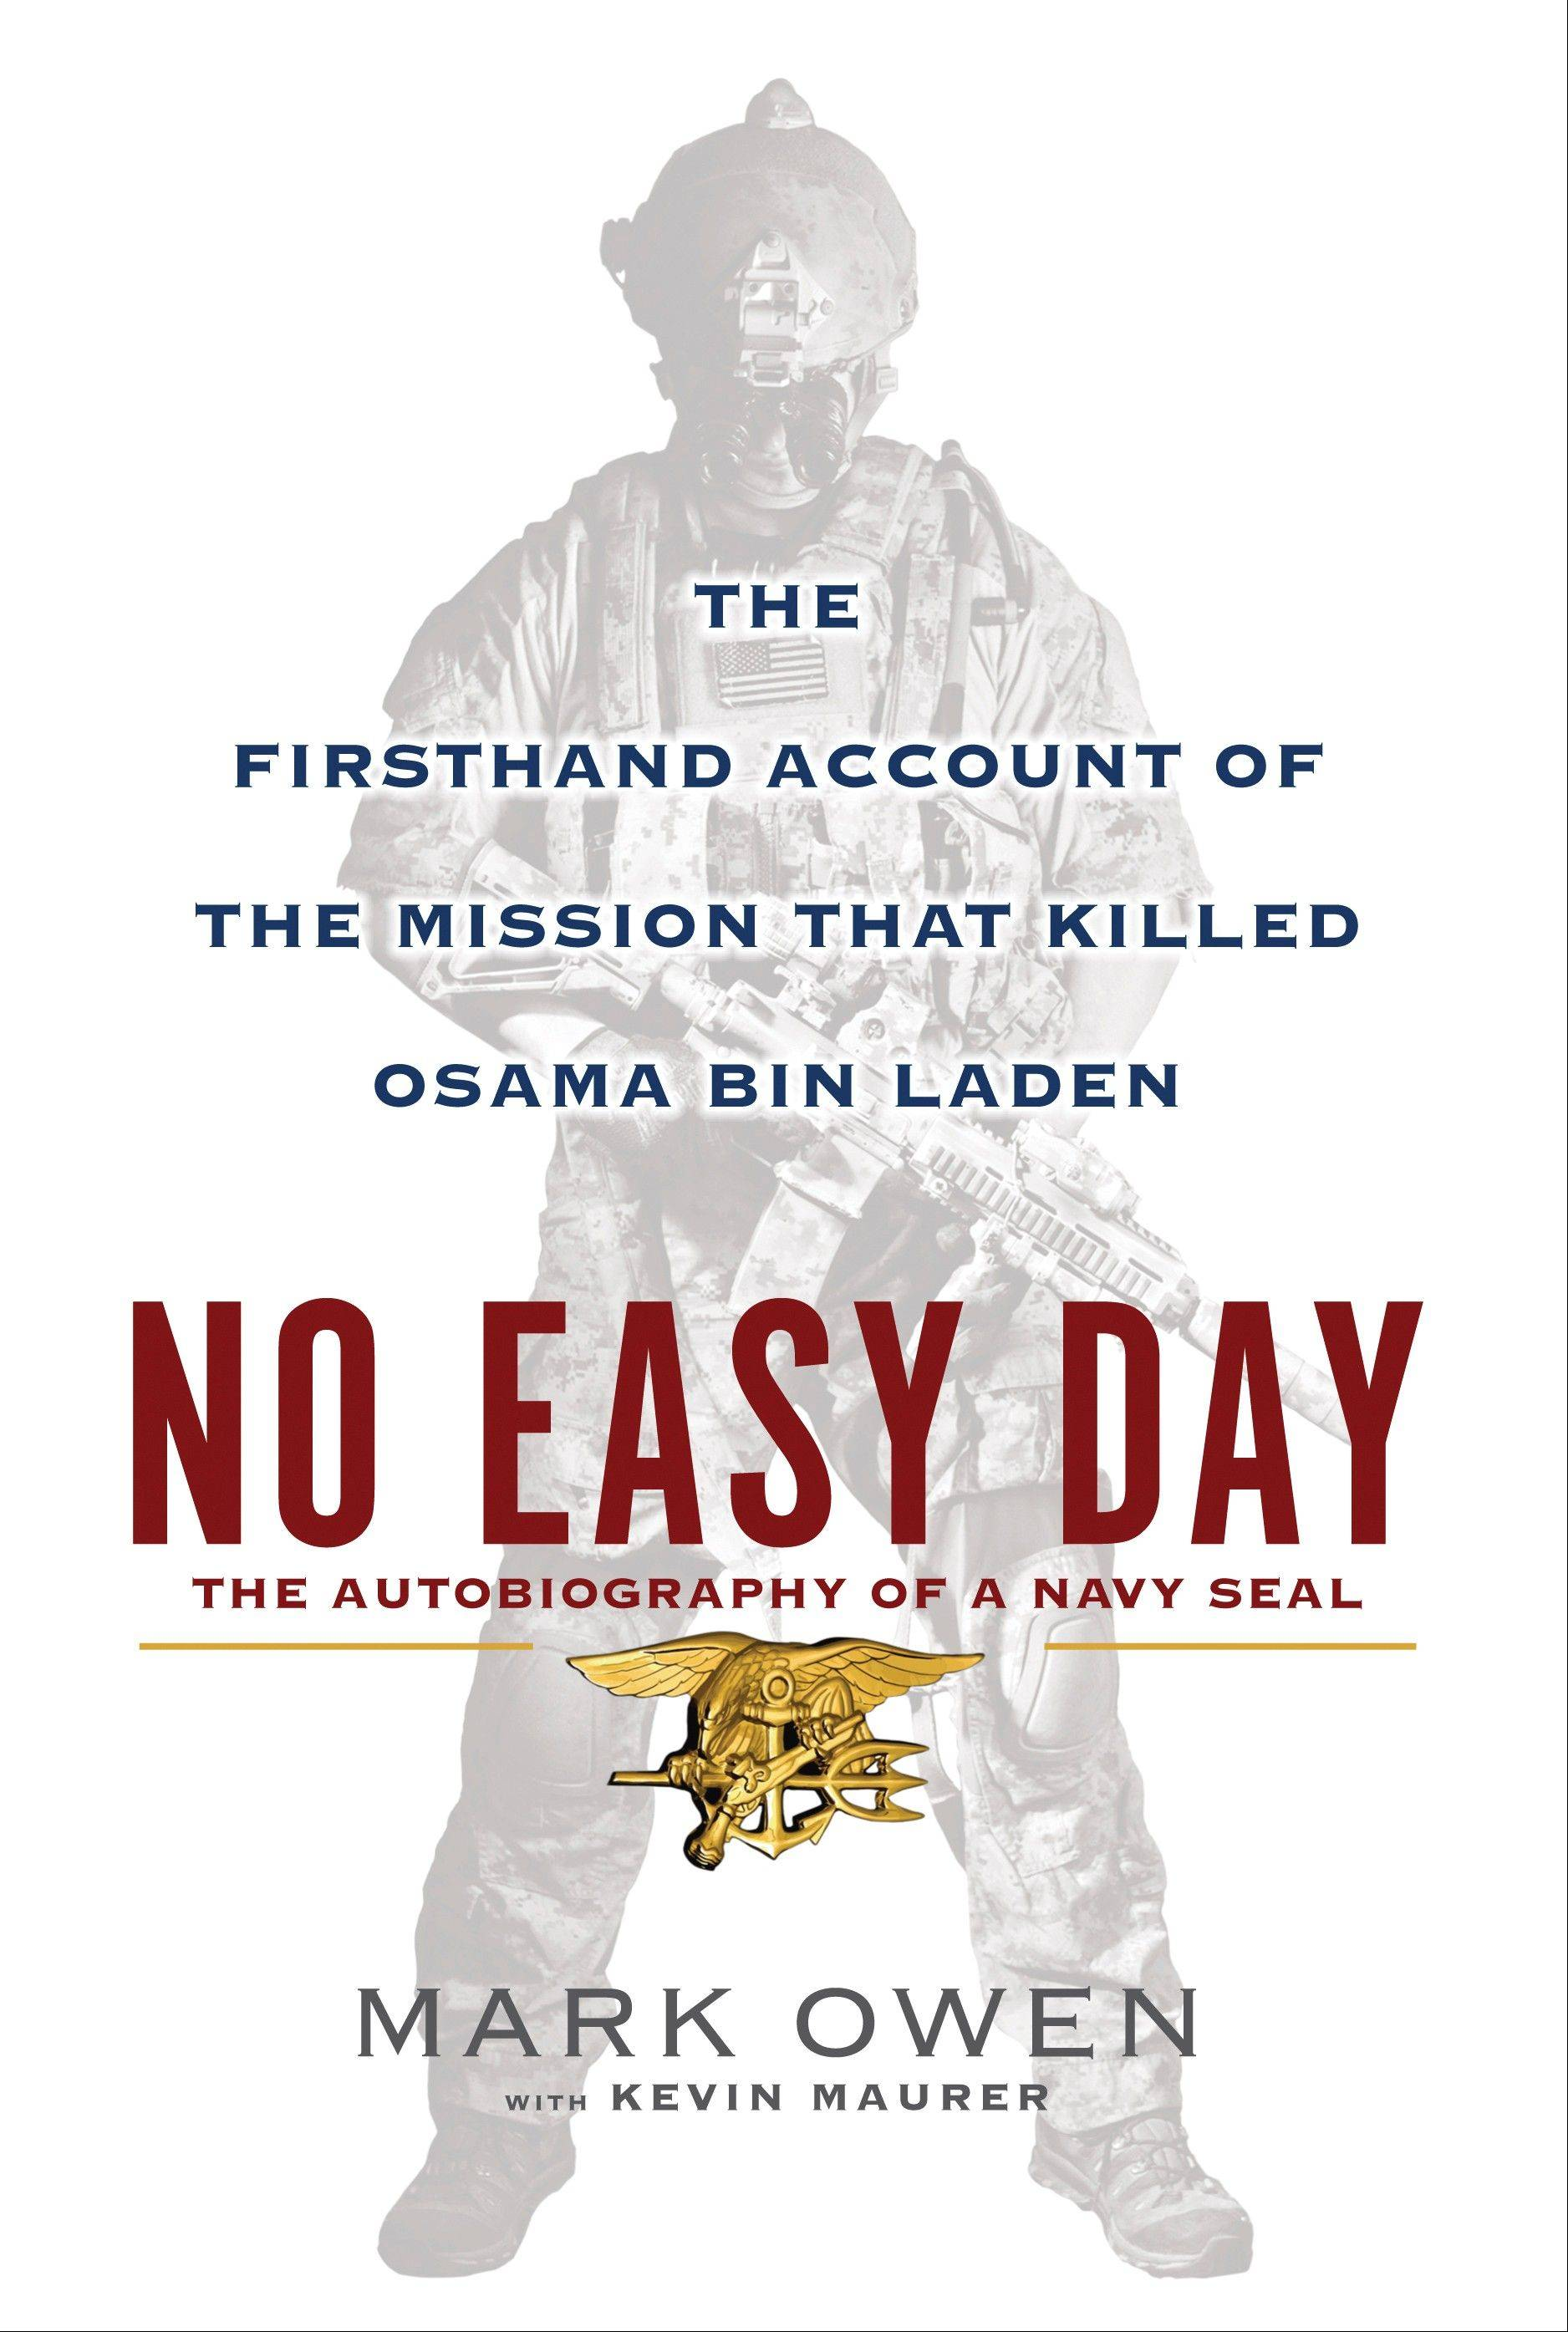 This book cover image released by Dutton shows �No Easy Day: The Firsthand Account of the Mission that Killed Osama Bin Laden� by Mark Owen with Kevin Maurer. The first-hand account of the Navy SEAL mission that killed Osama bin Laden is coming out Sept. 11.